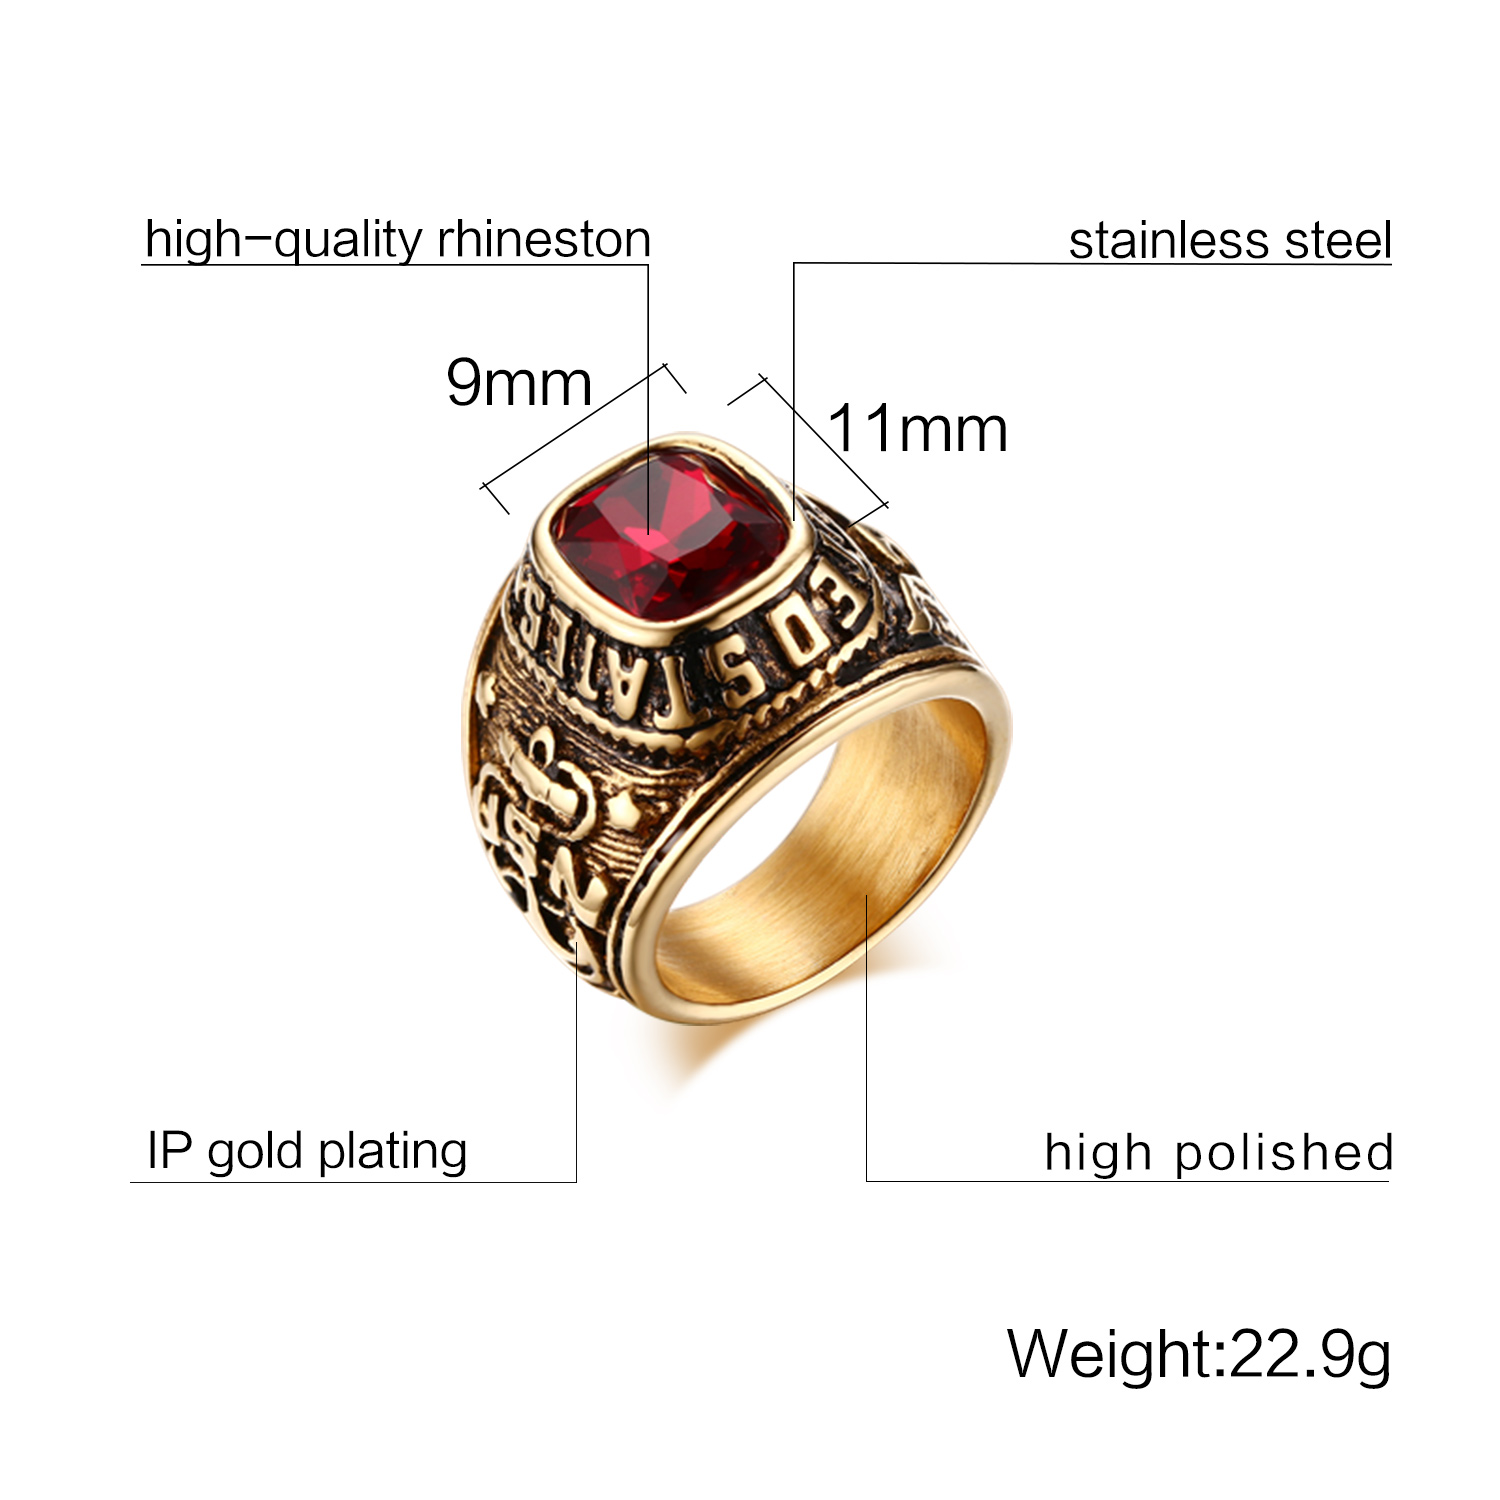 products oceana stainless navy us mens rings ring steel service com singet military